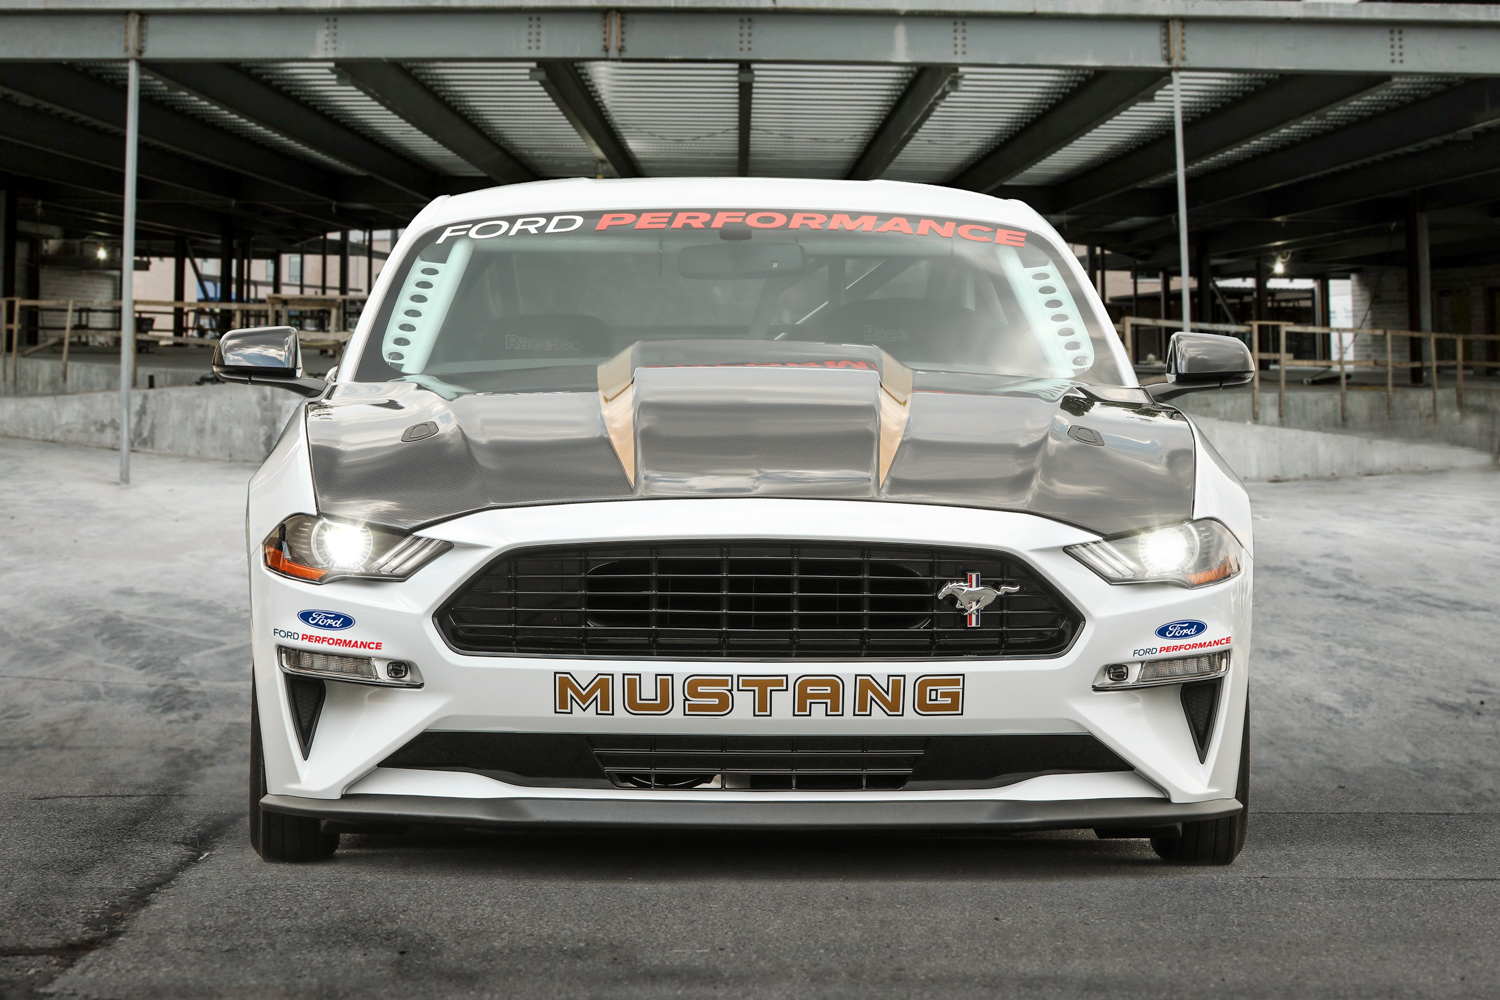 2018 Ford Mustang Cobra Jet front end